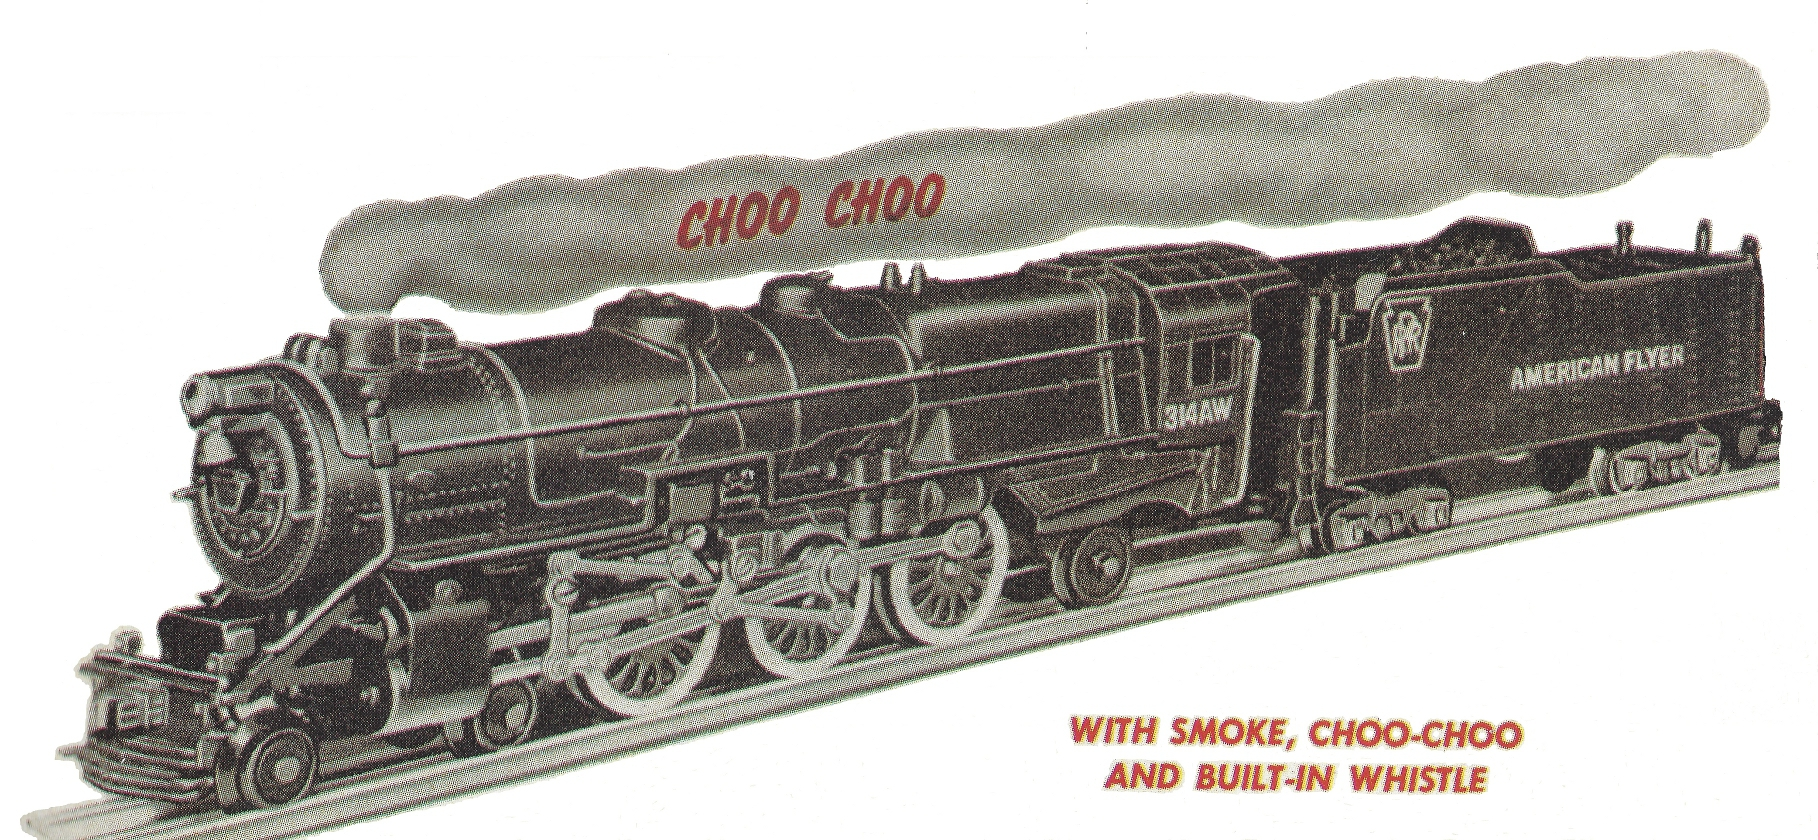 American Flyer Locomotive 314AW Pennsylvania K-5 Catalog Image